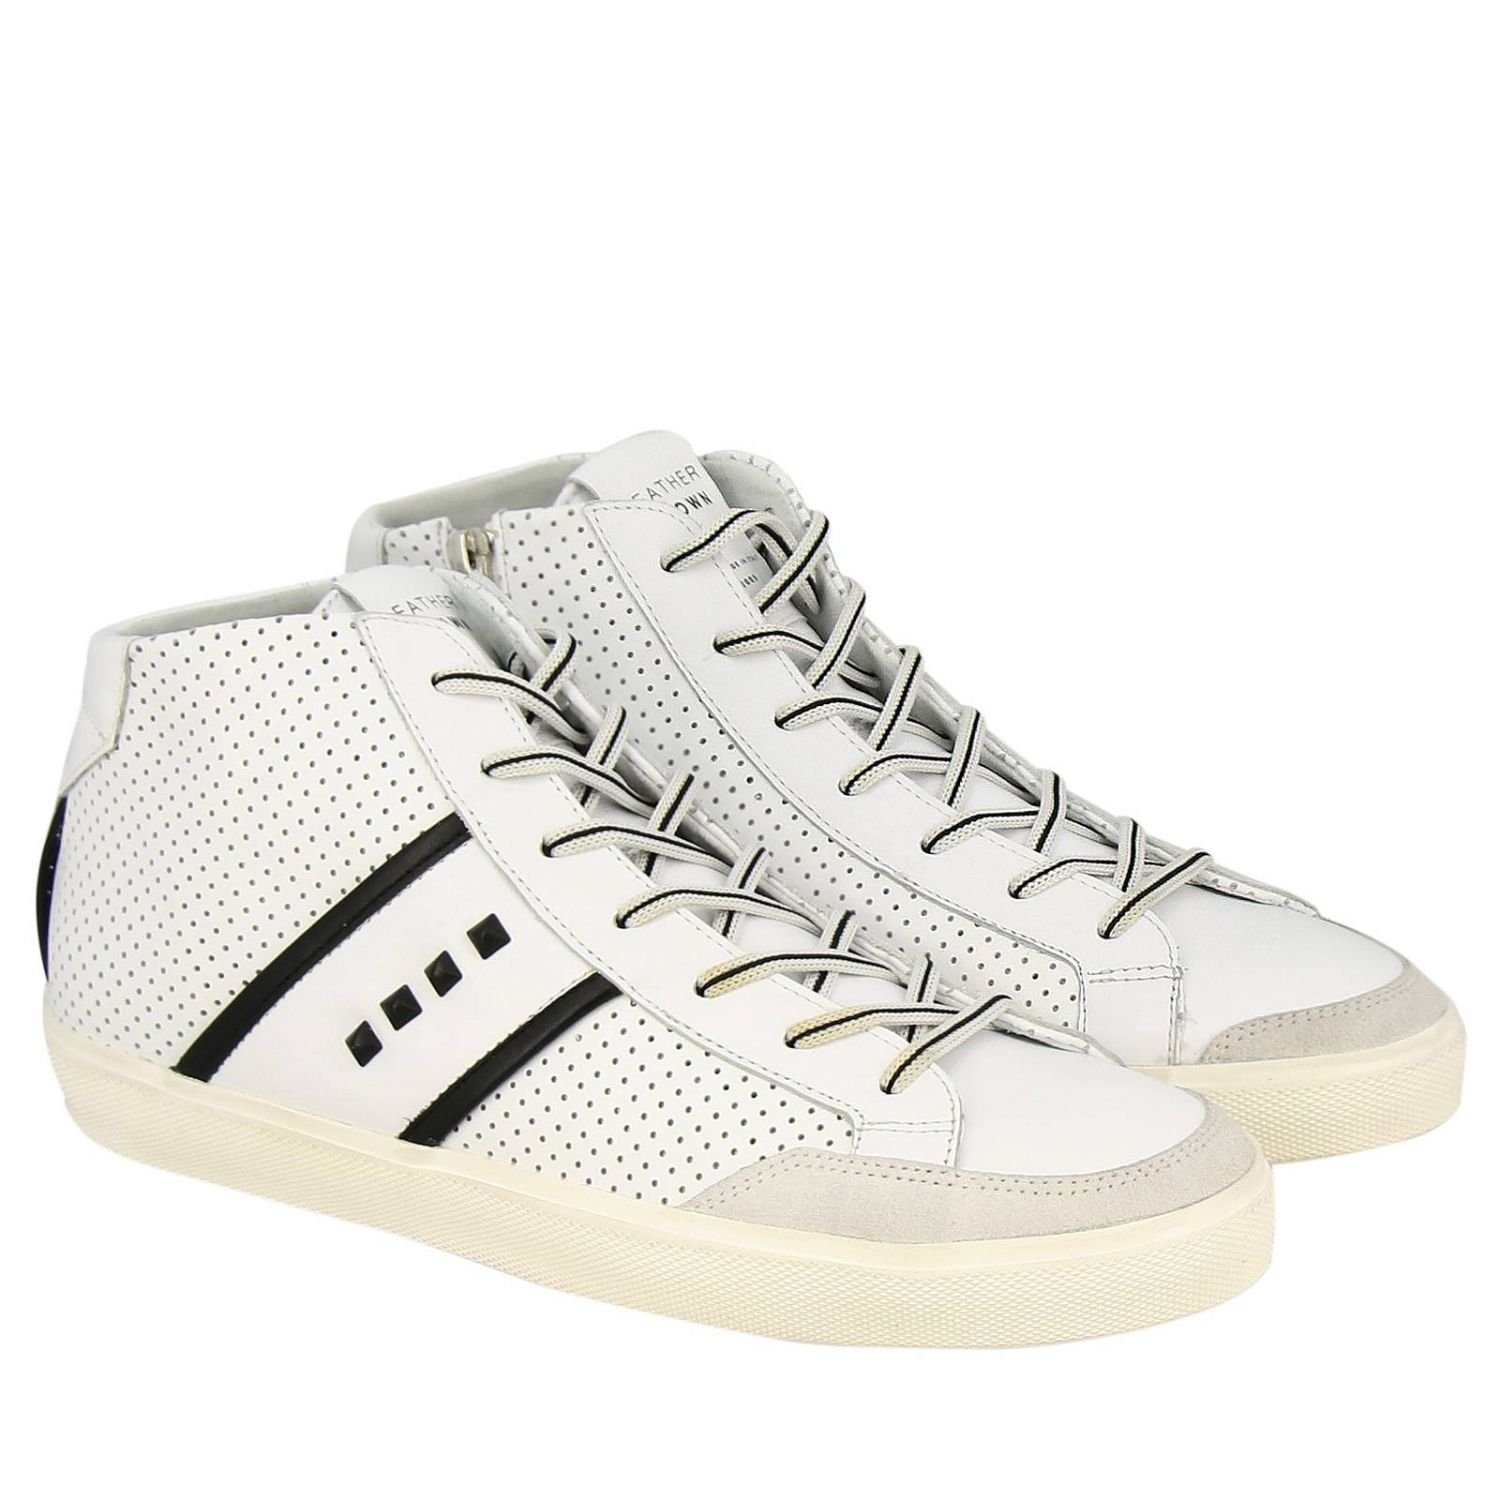 Shoes men Leather Crown white 2